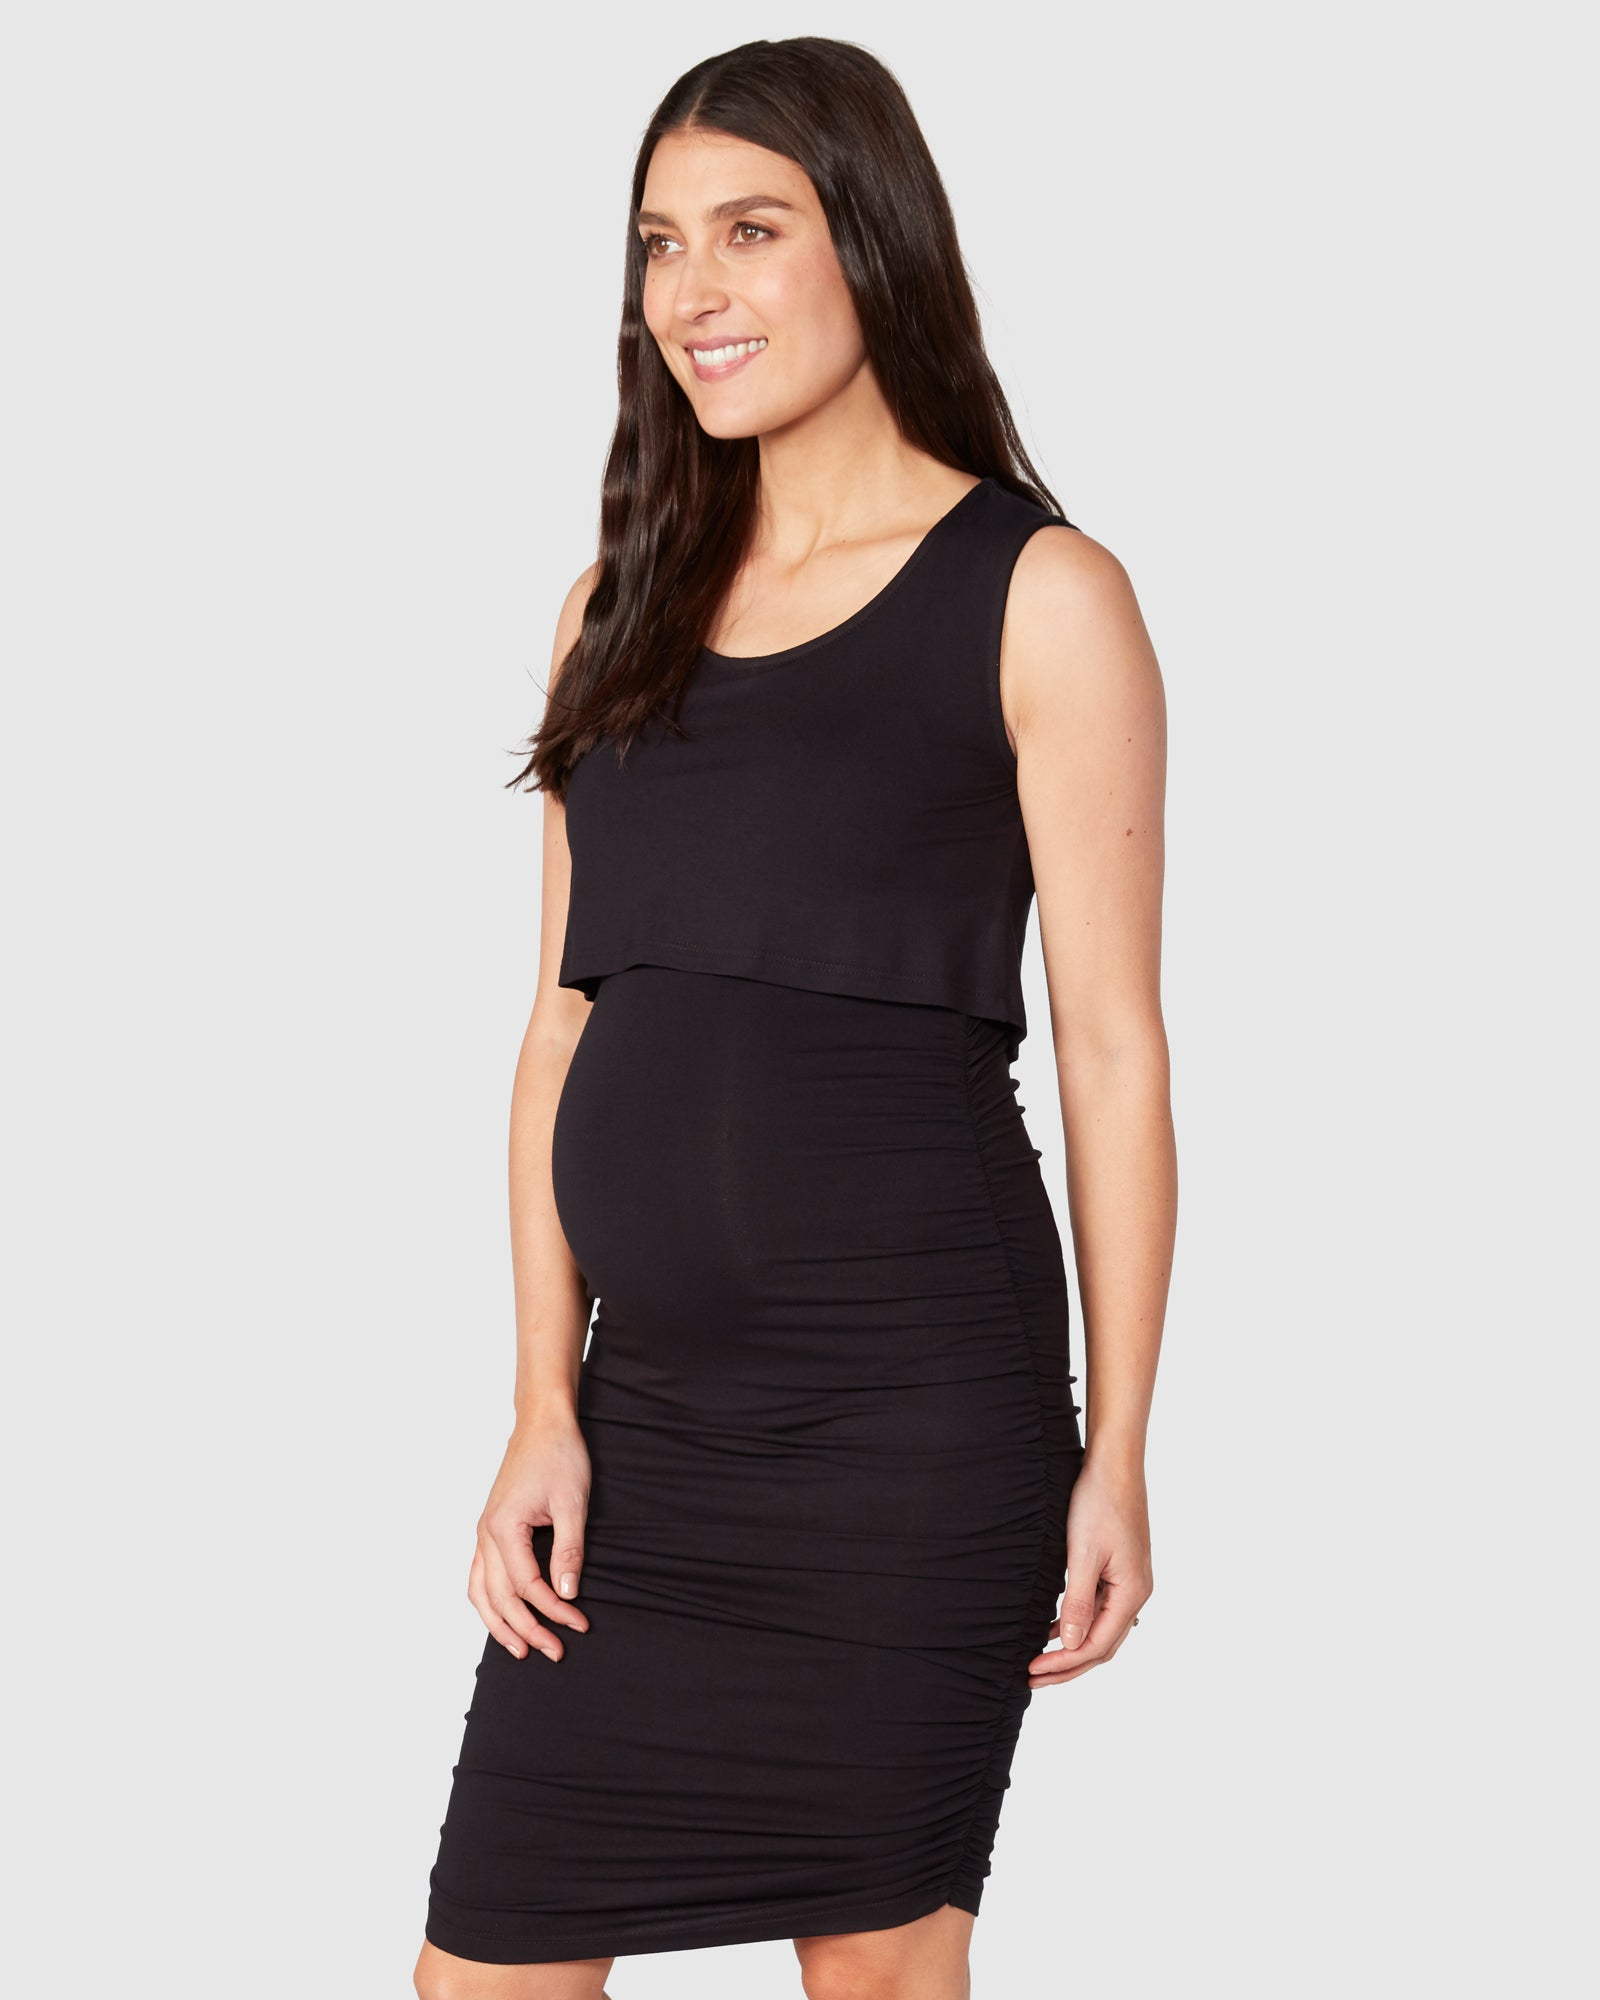 Lindsay Nursing Singlet Dress